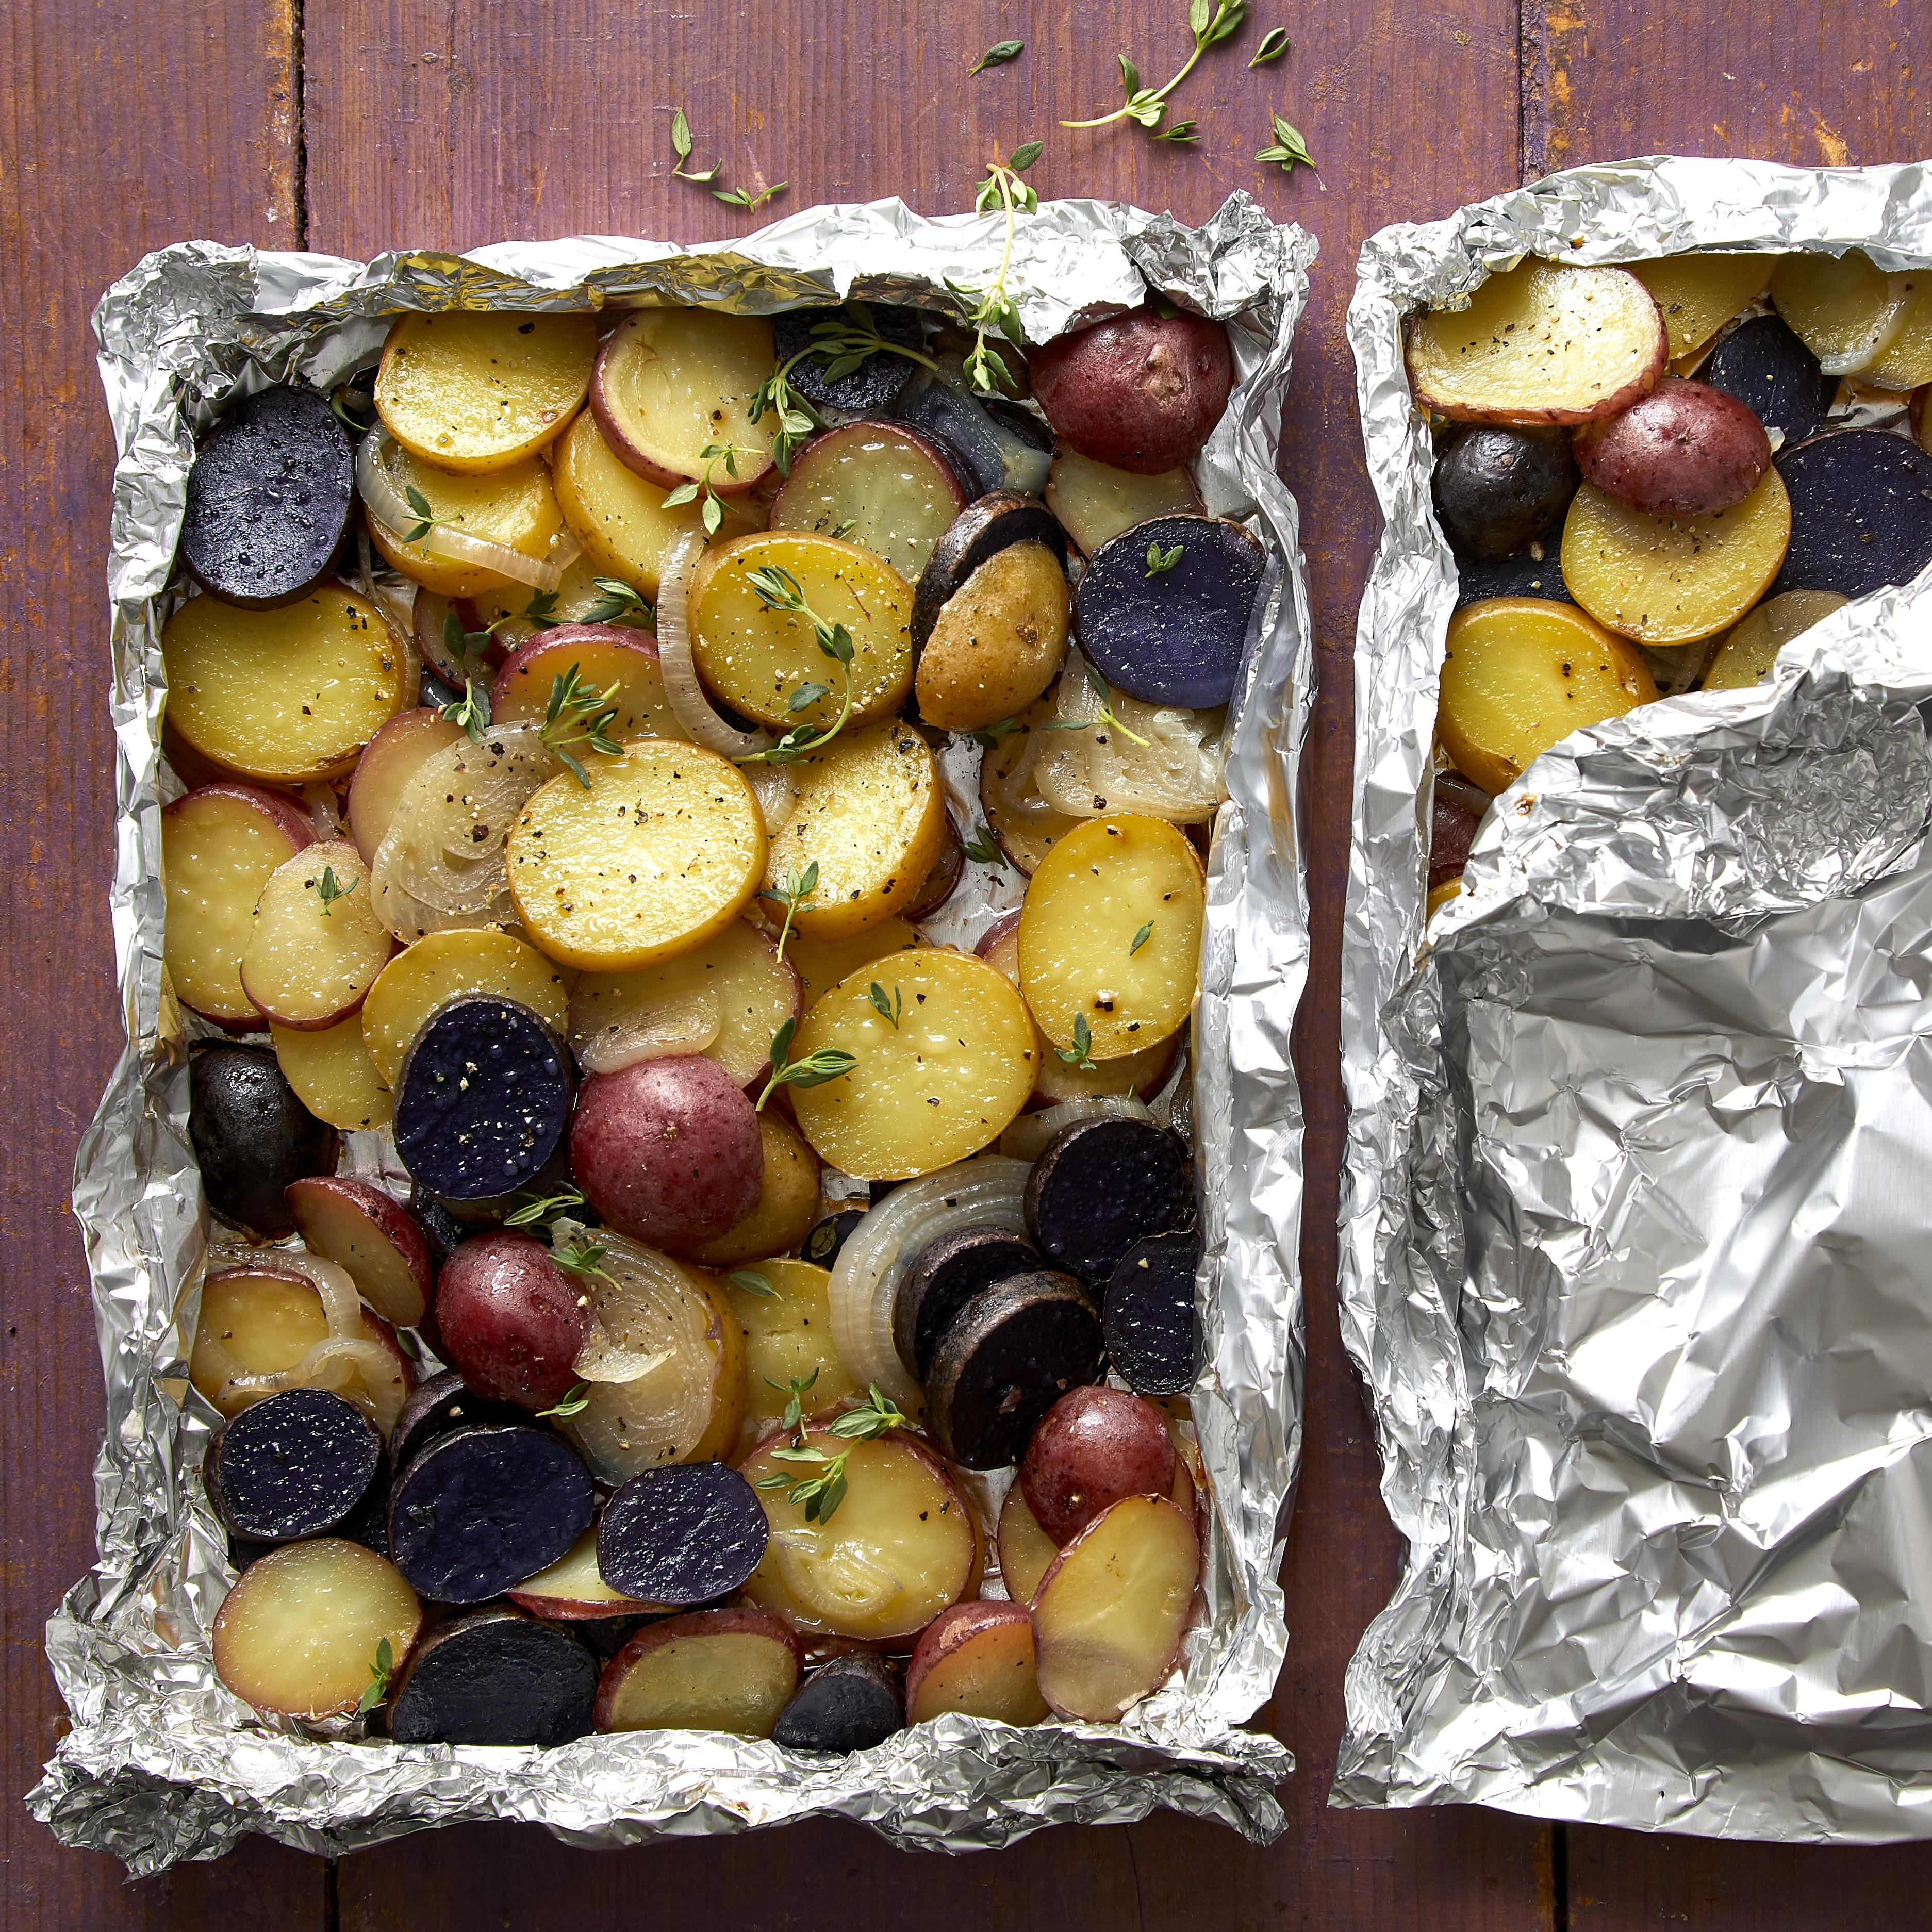 Grilled Potato Packets Beth-Ann Bove